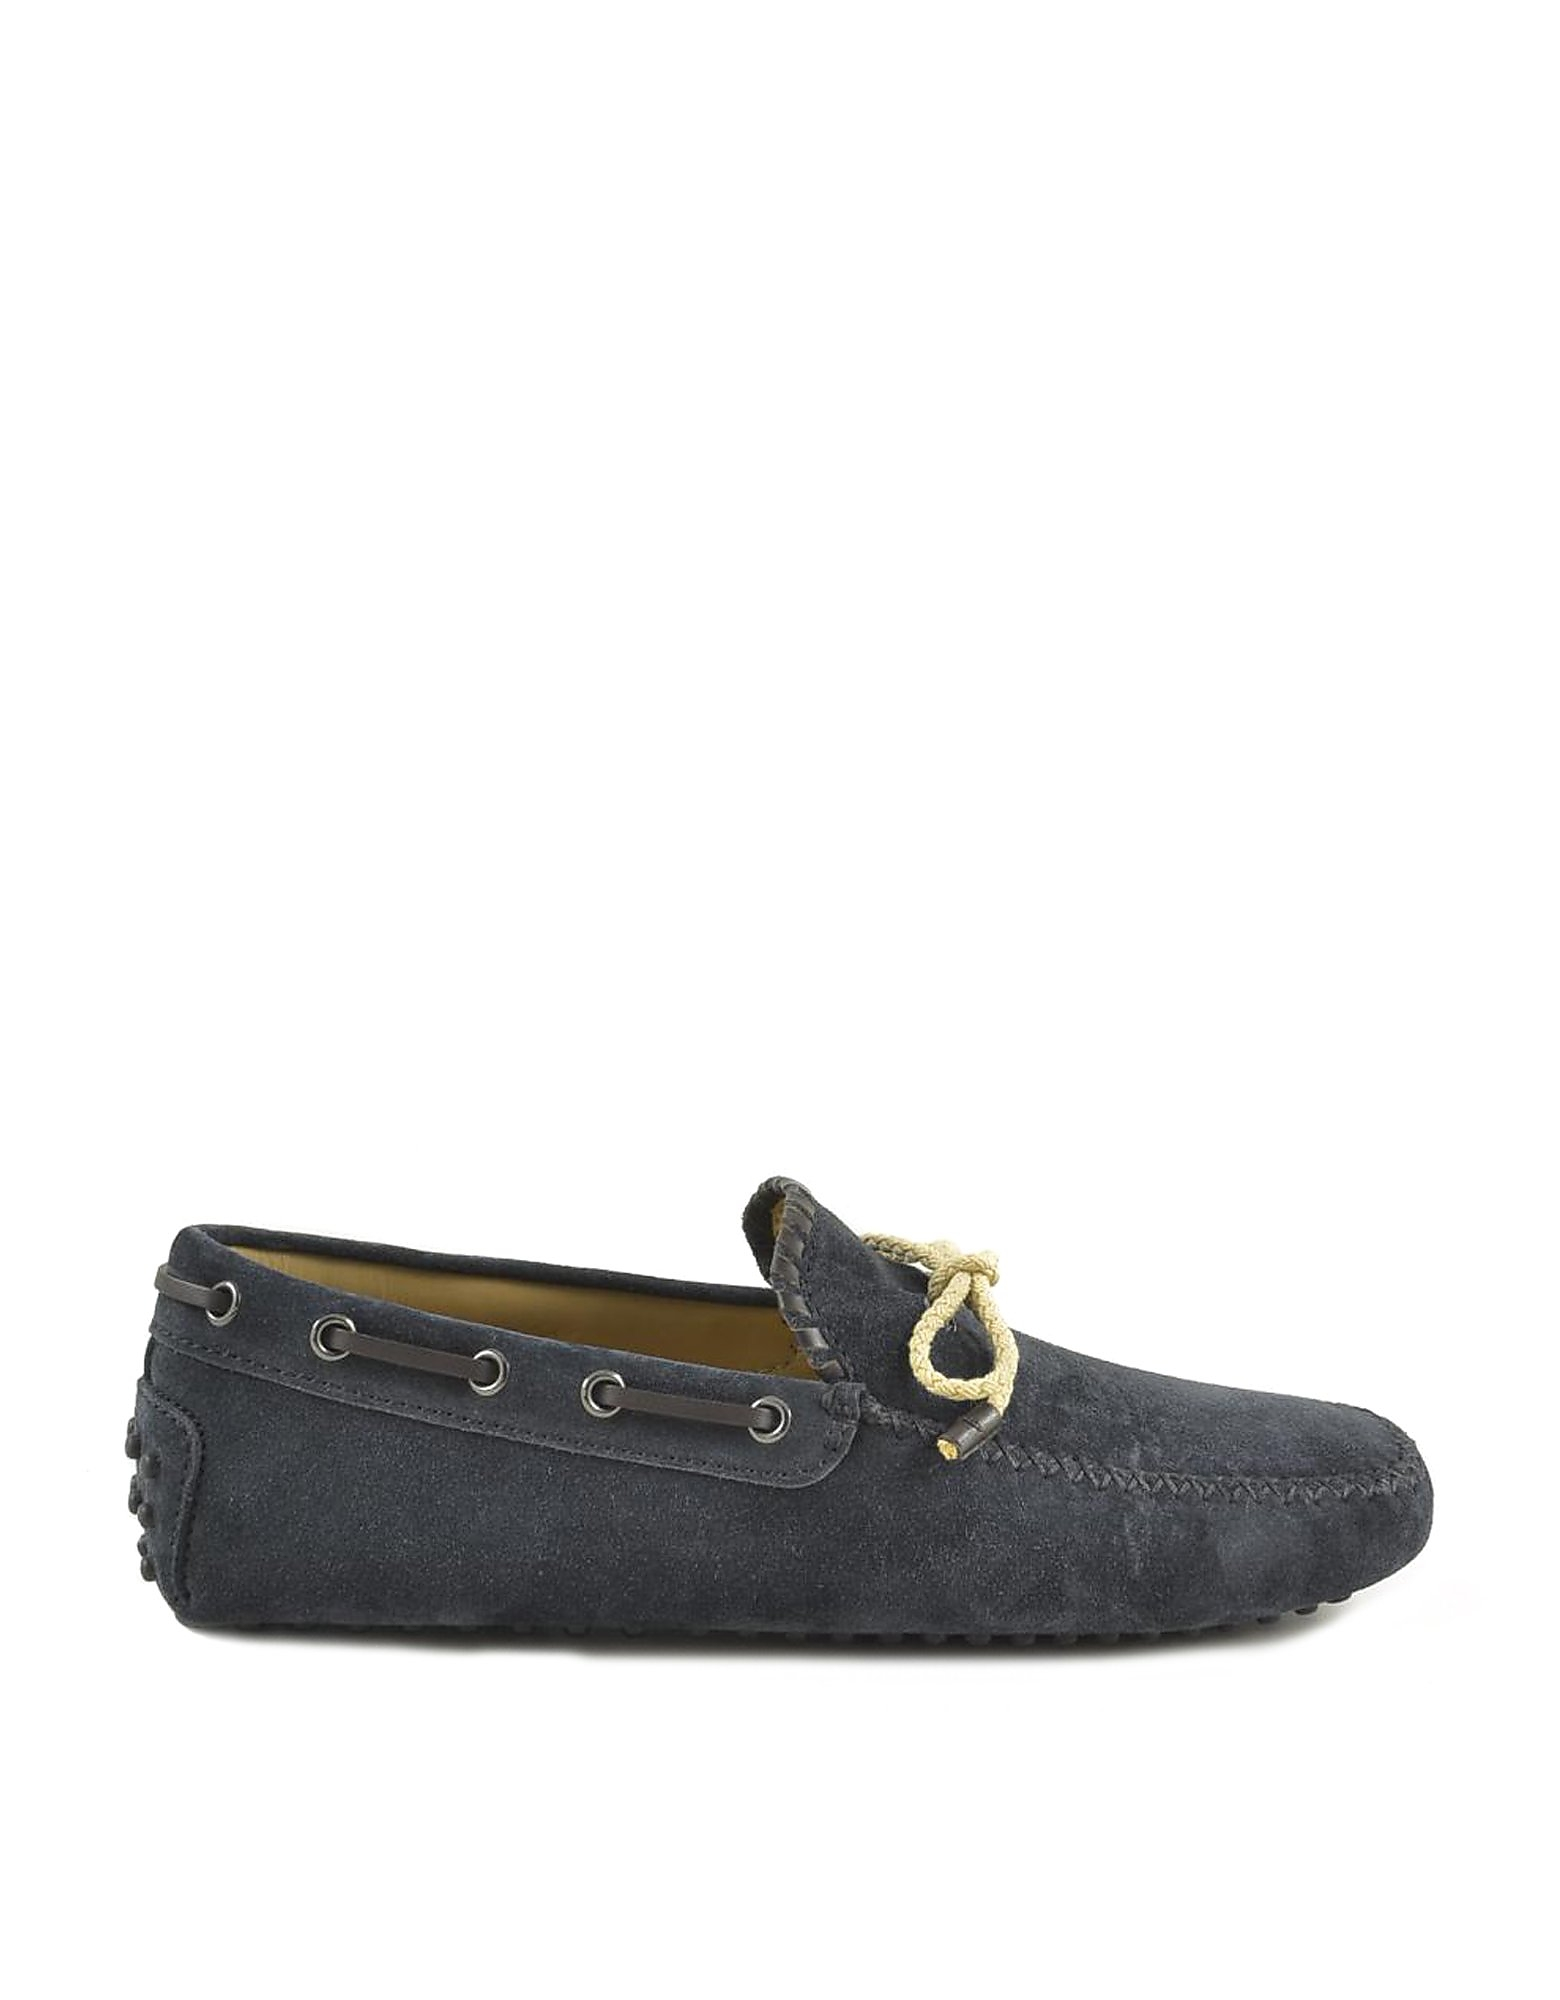 Tod's Designer Shoes, Men's Blue Loafer Shoes